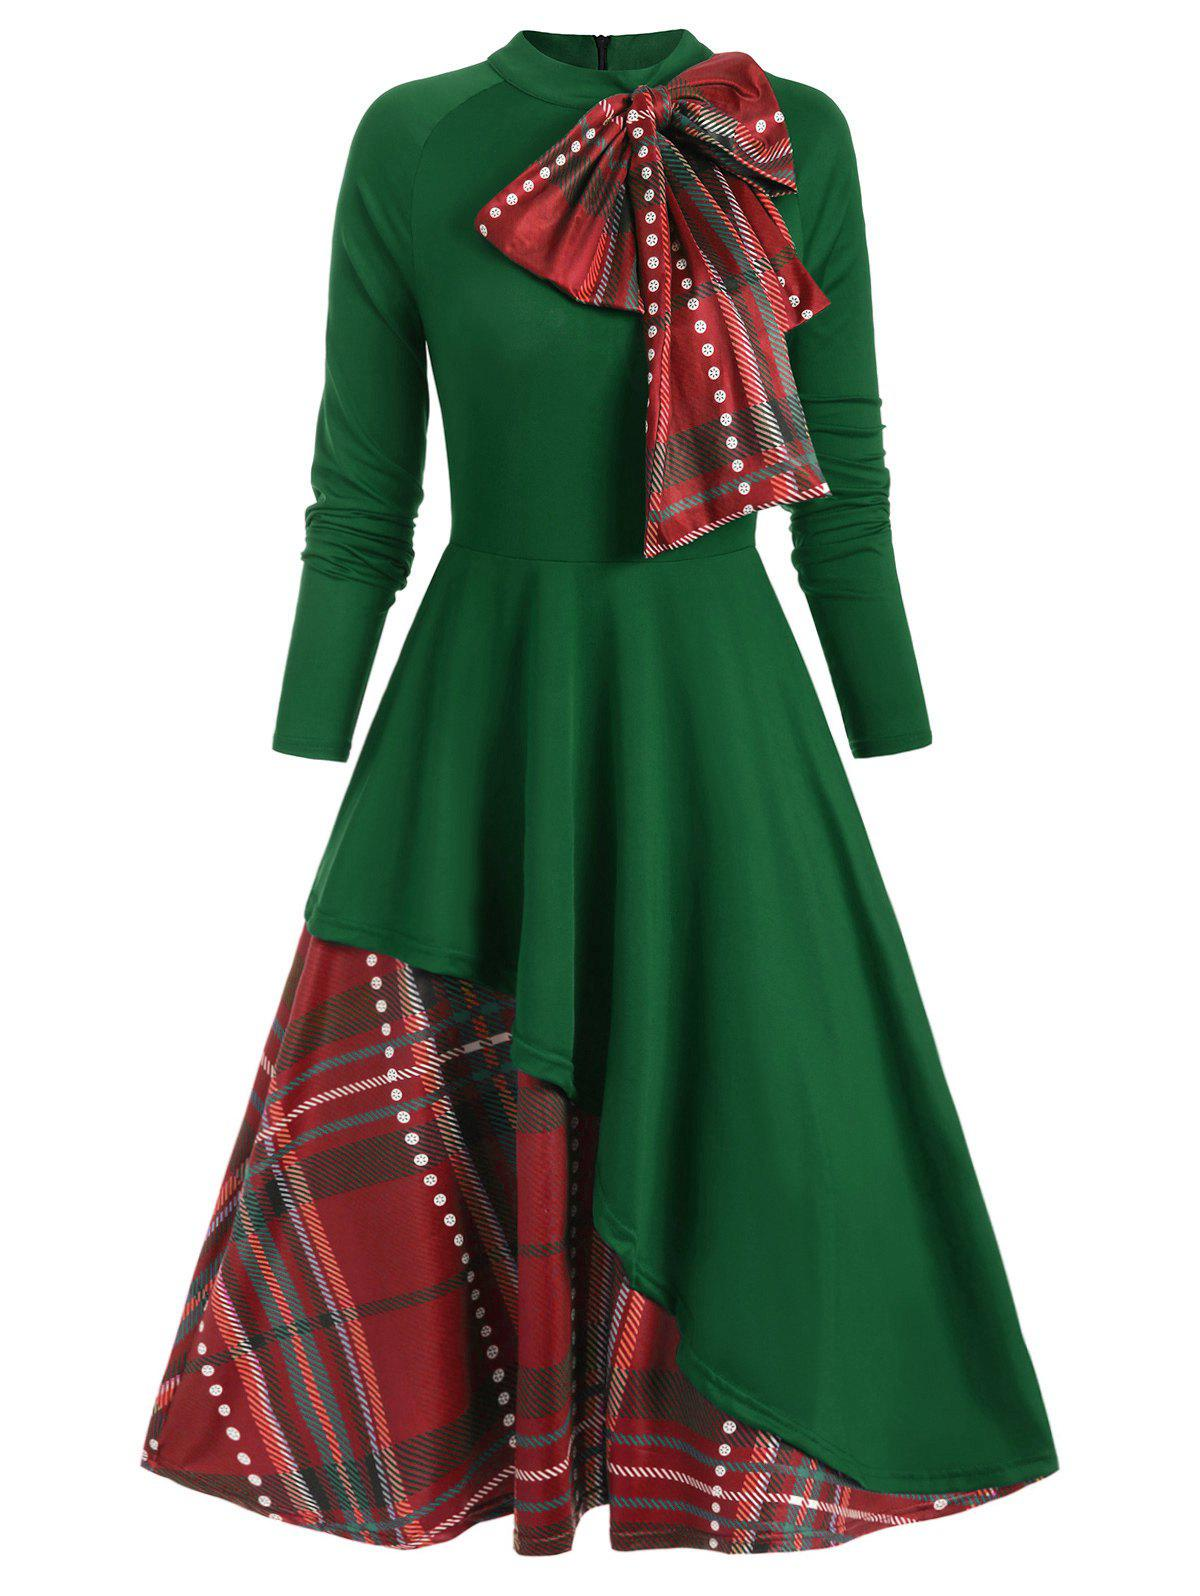 Affordable Plaid Contrast Bowknot Flared Overlay Dress